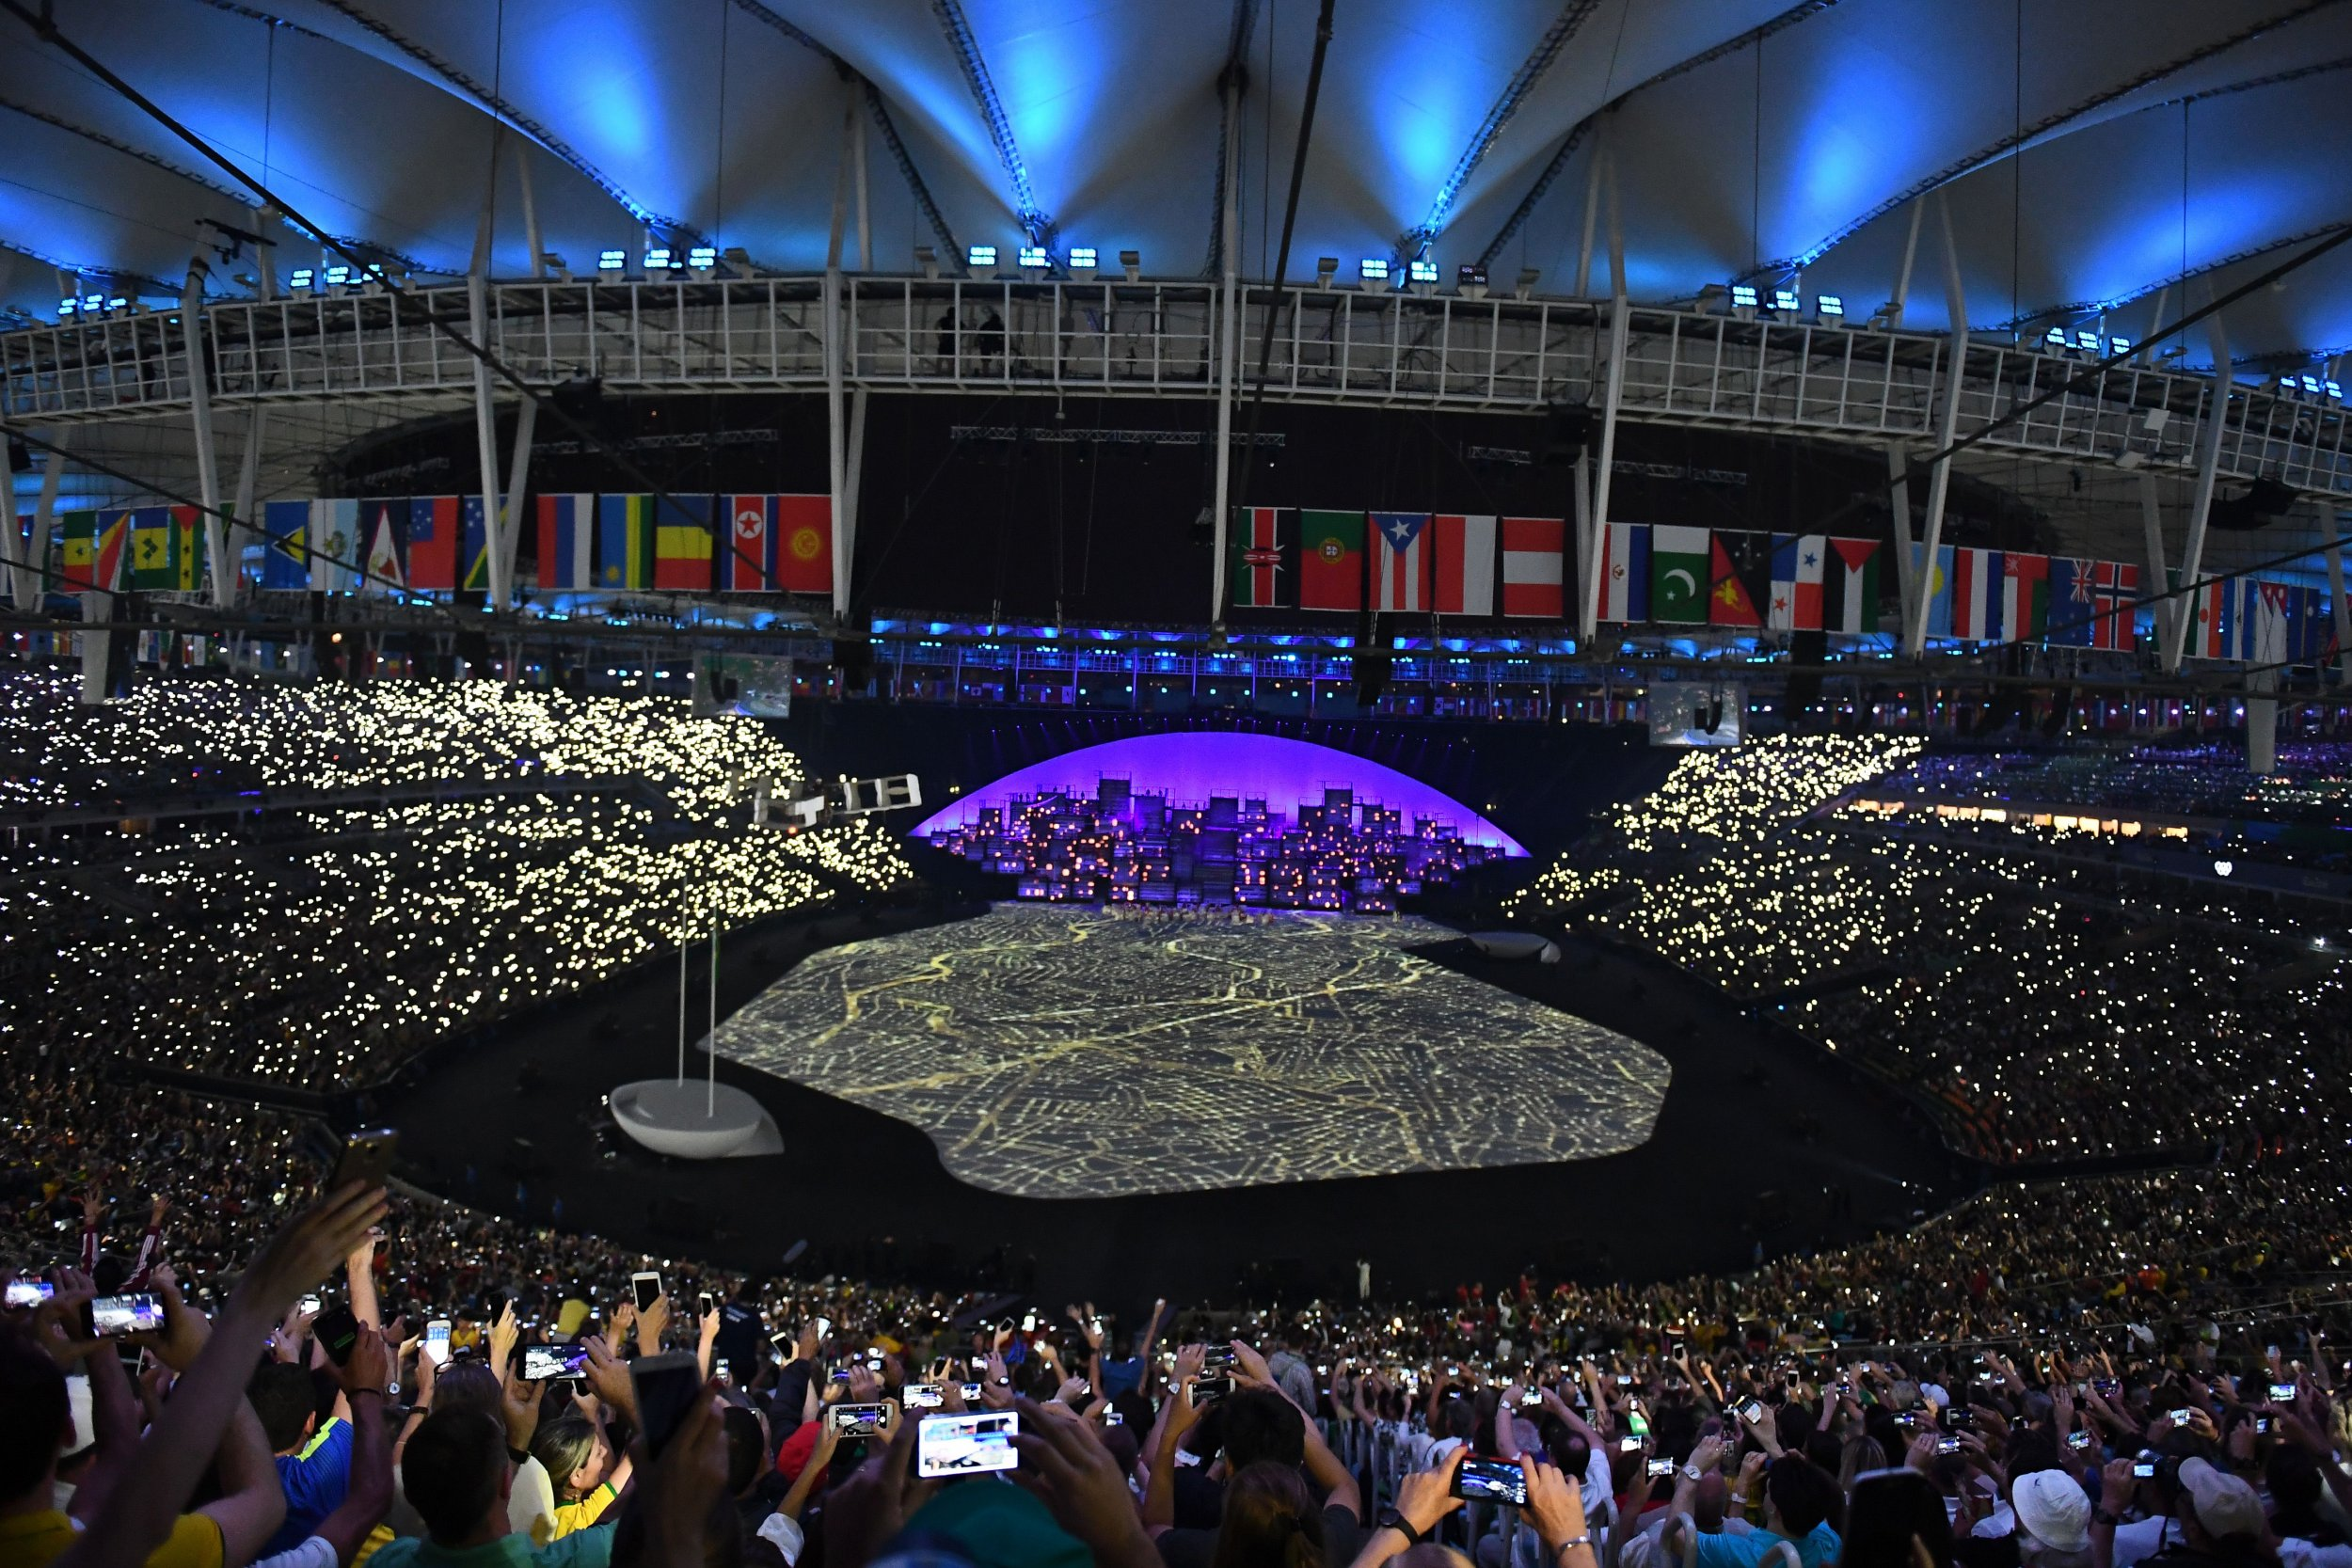 The Rio Olympics opening ceremony.